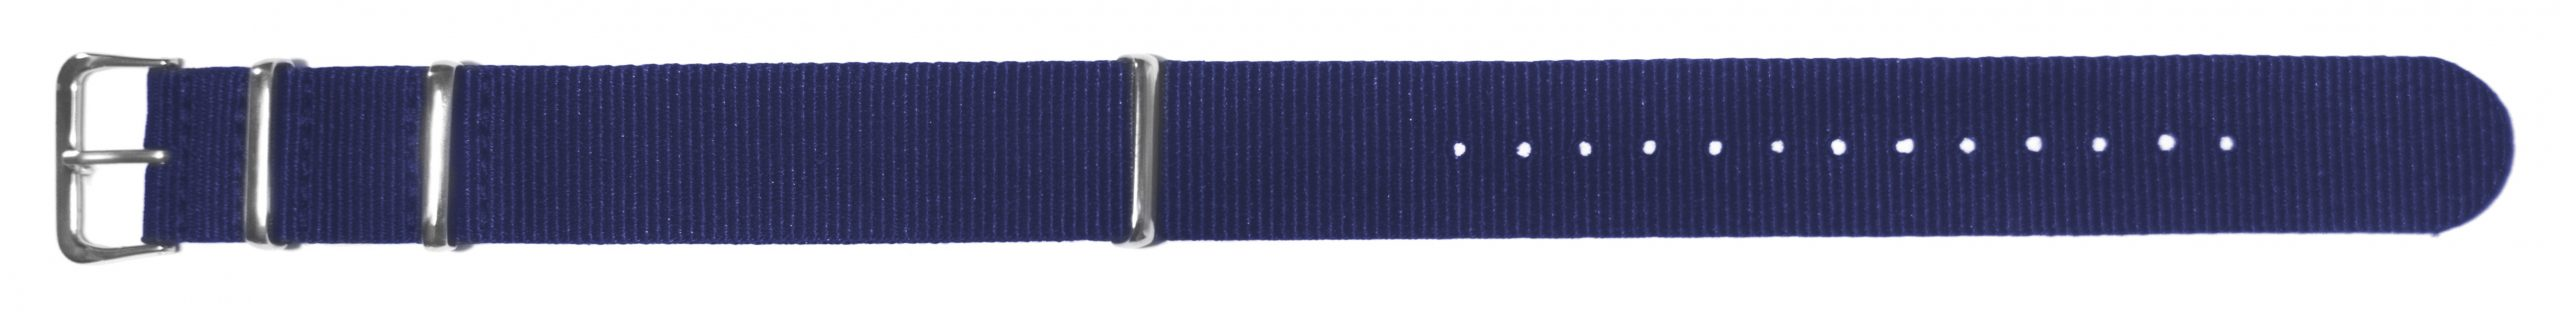 Nato Style Navy Blue Nylon Watch Strap, 20mm